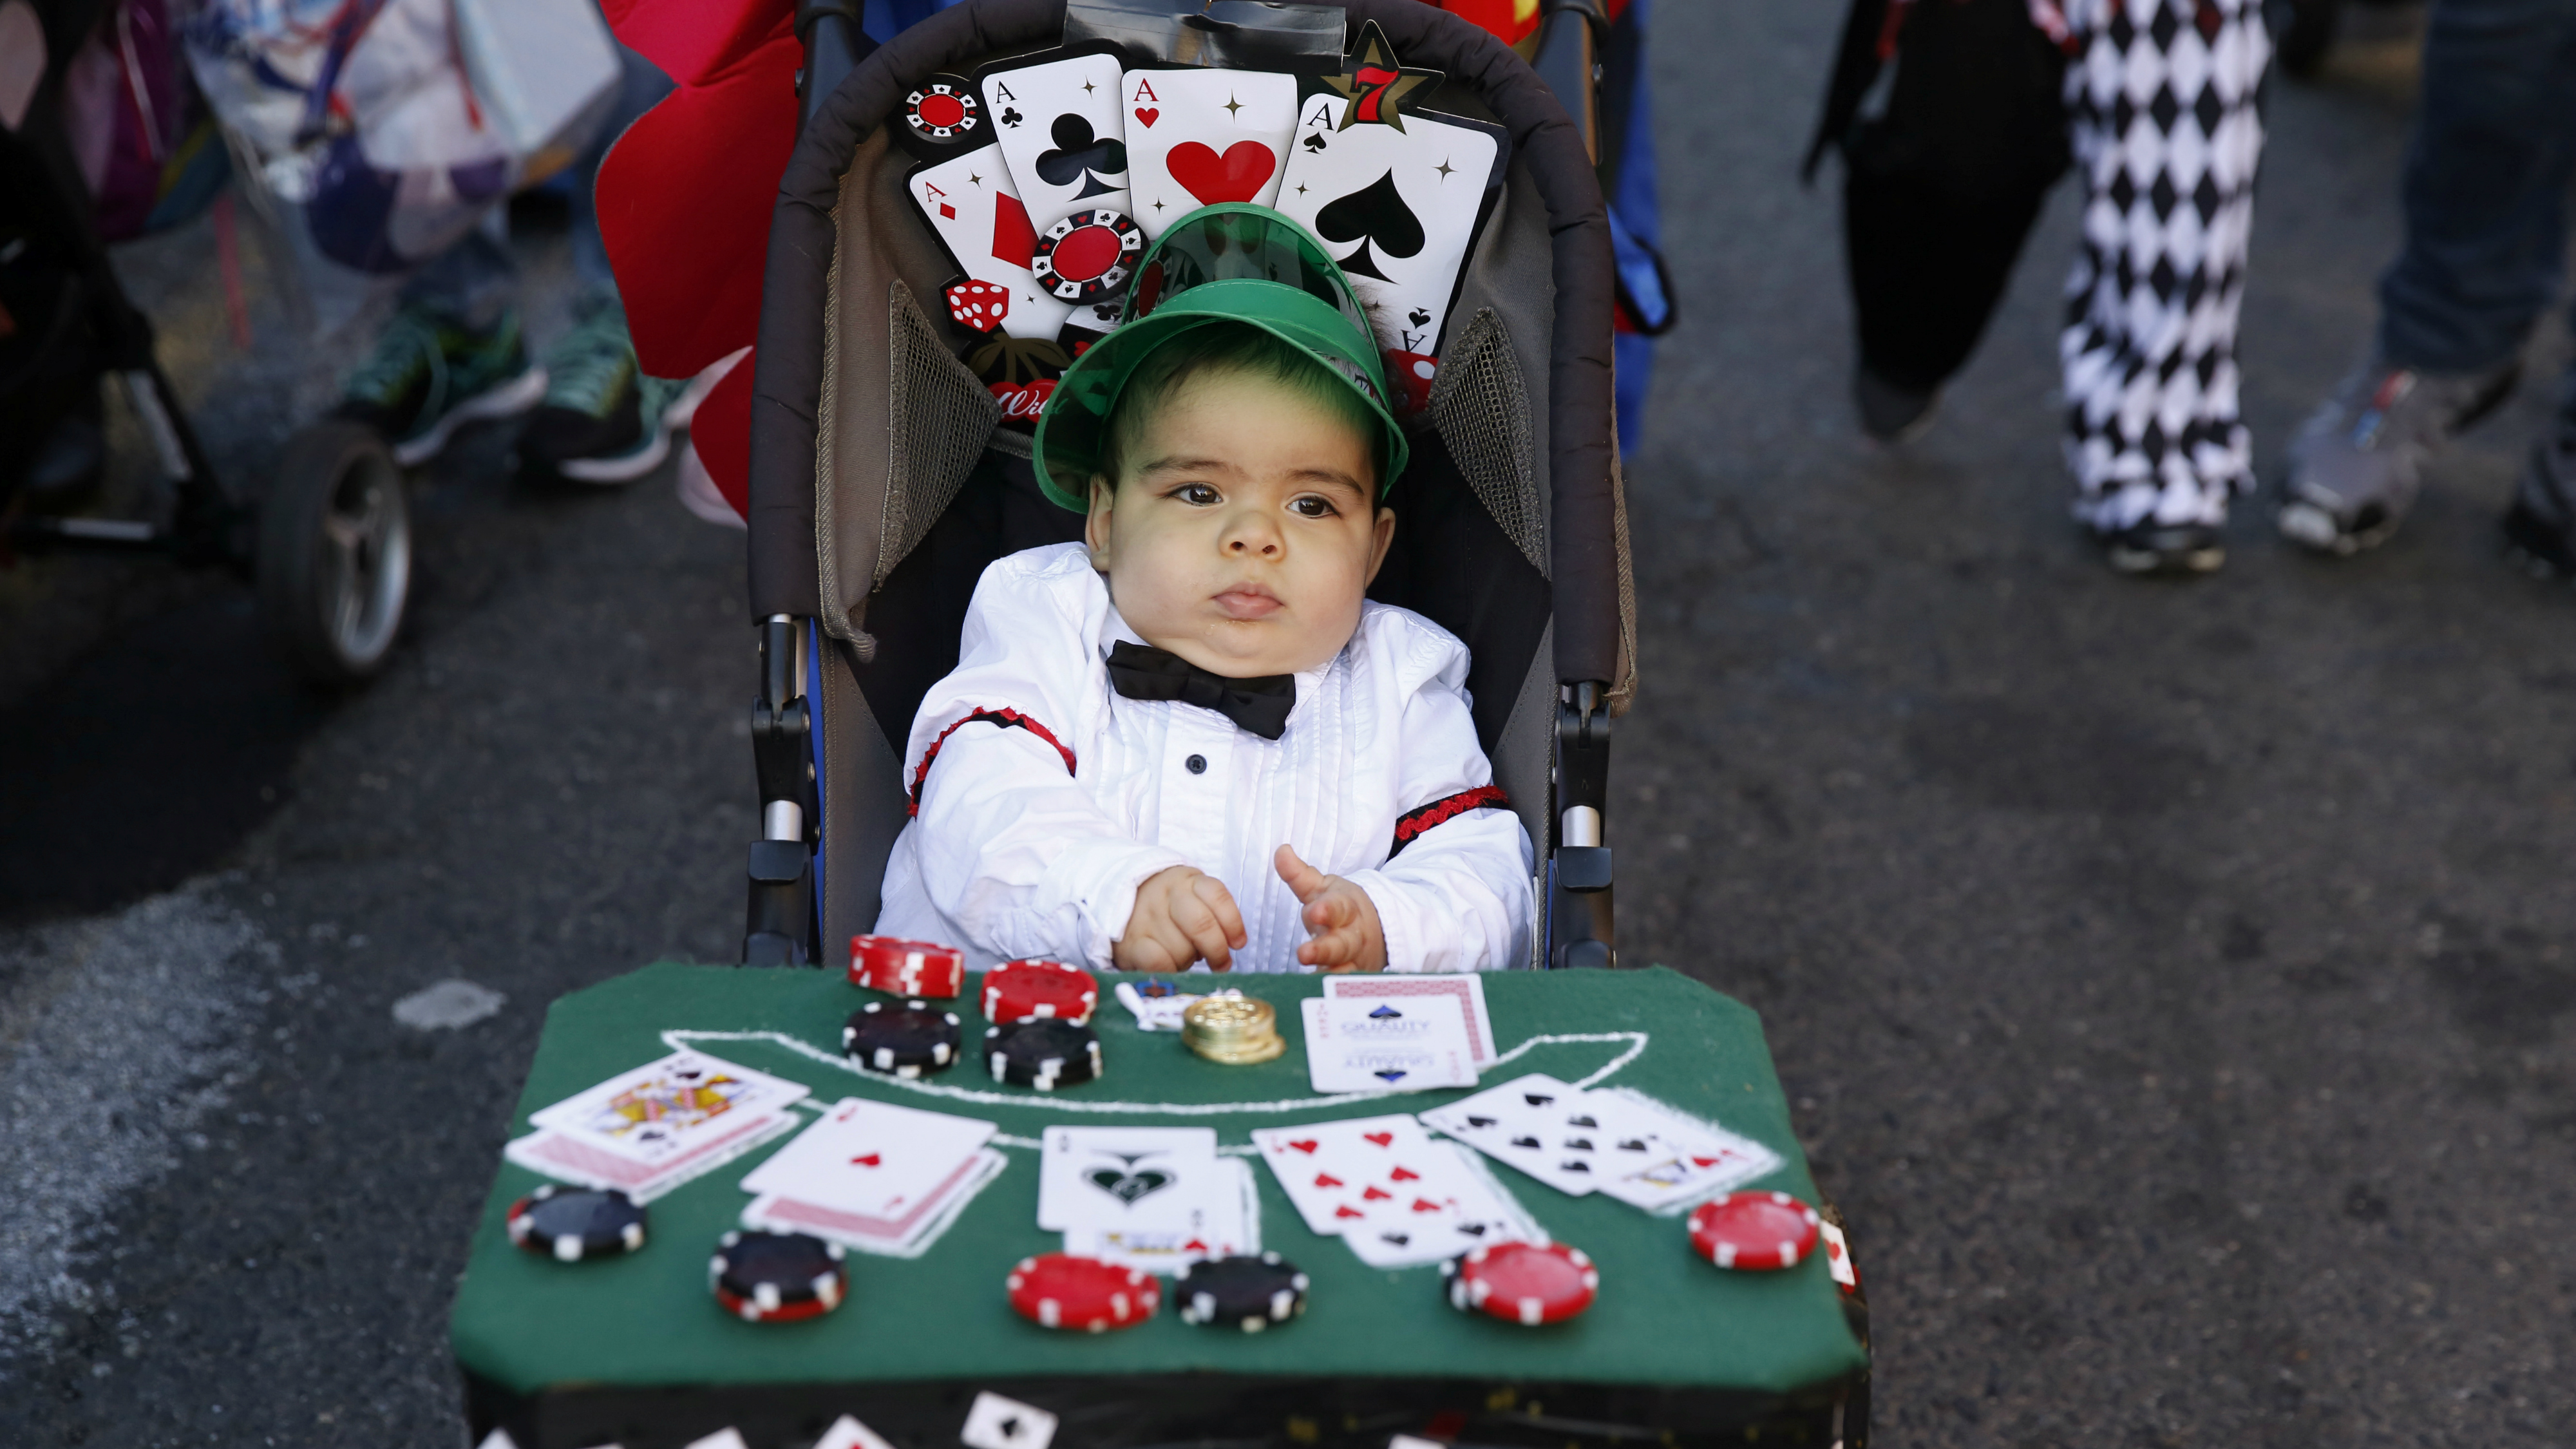 A child dressed up as a card dealer.